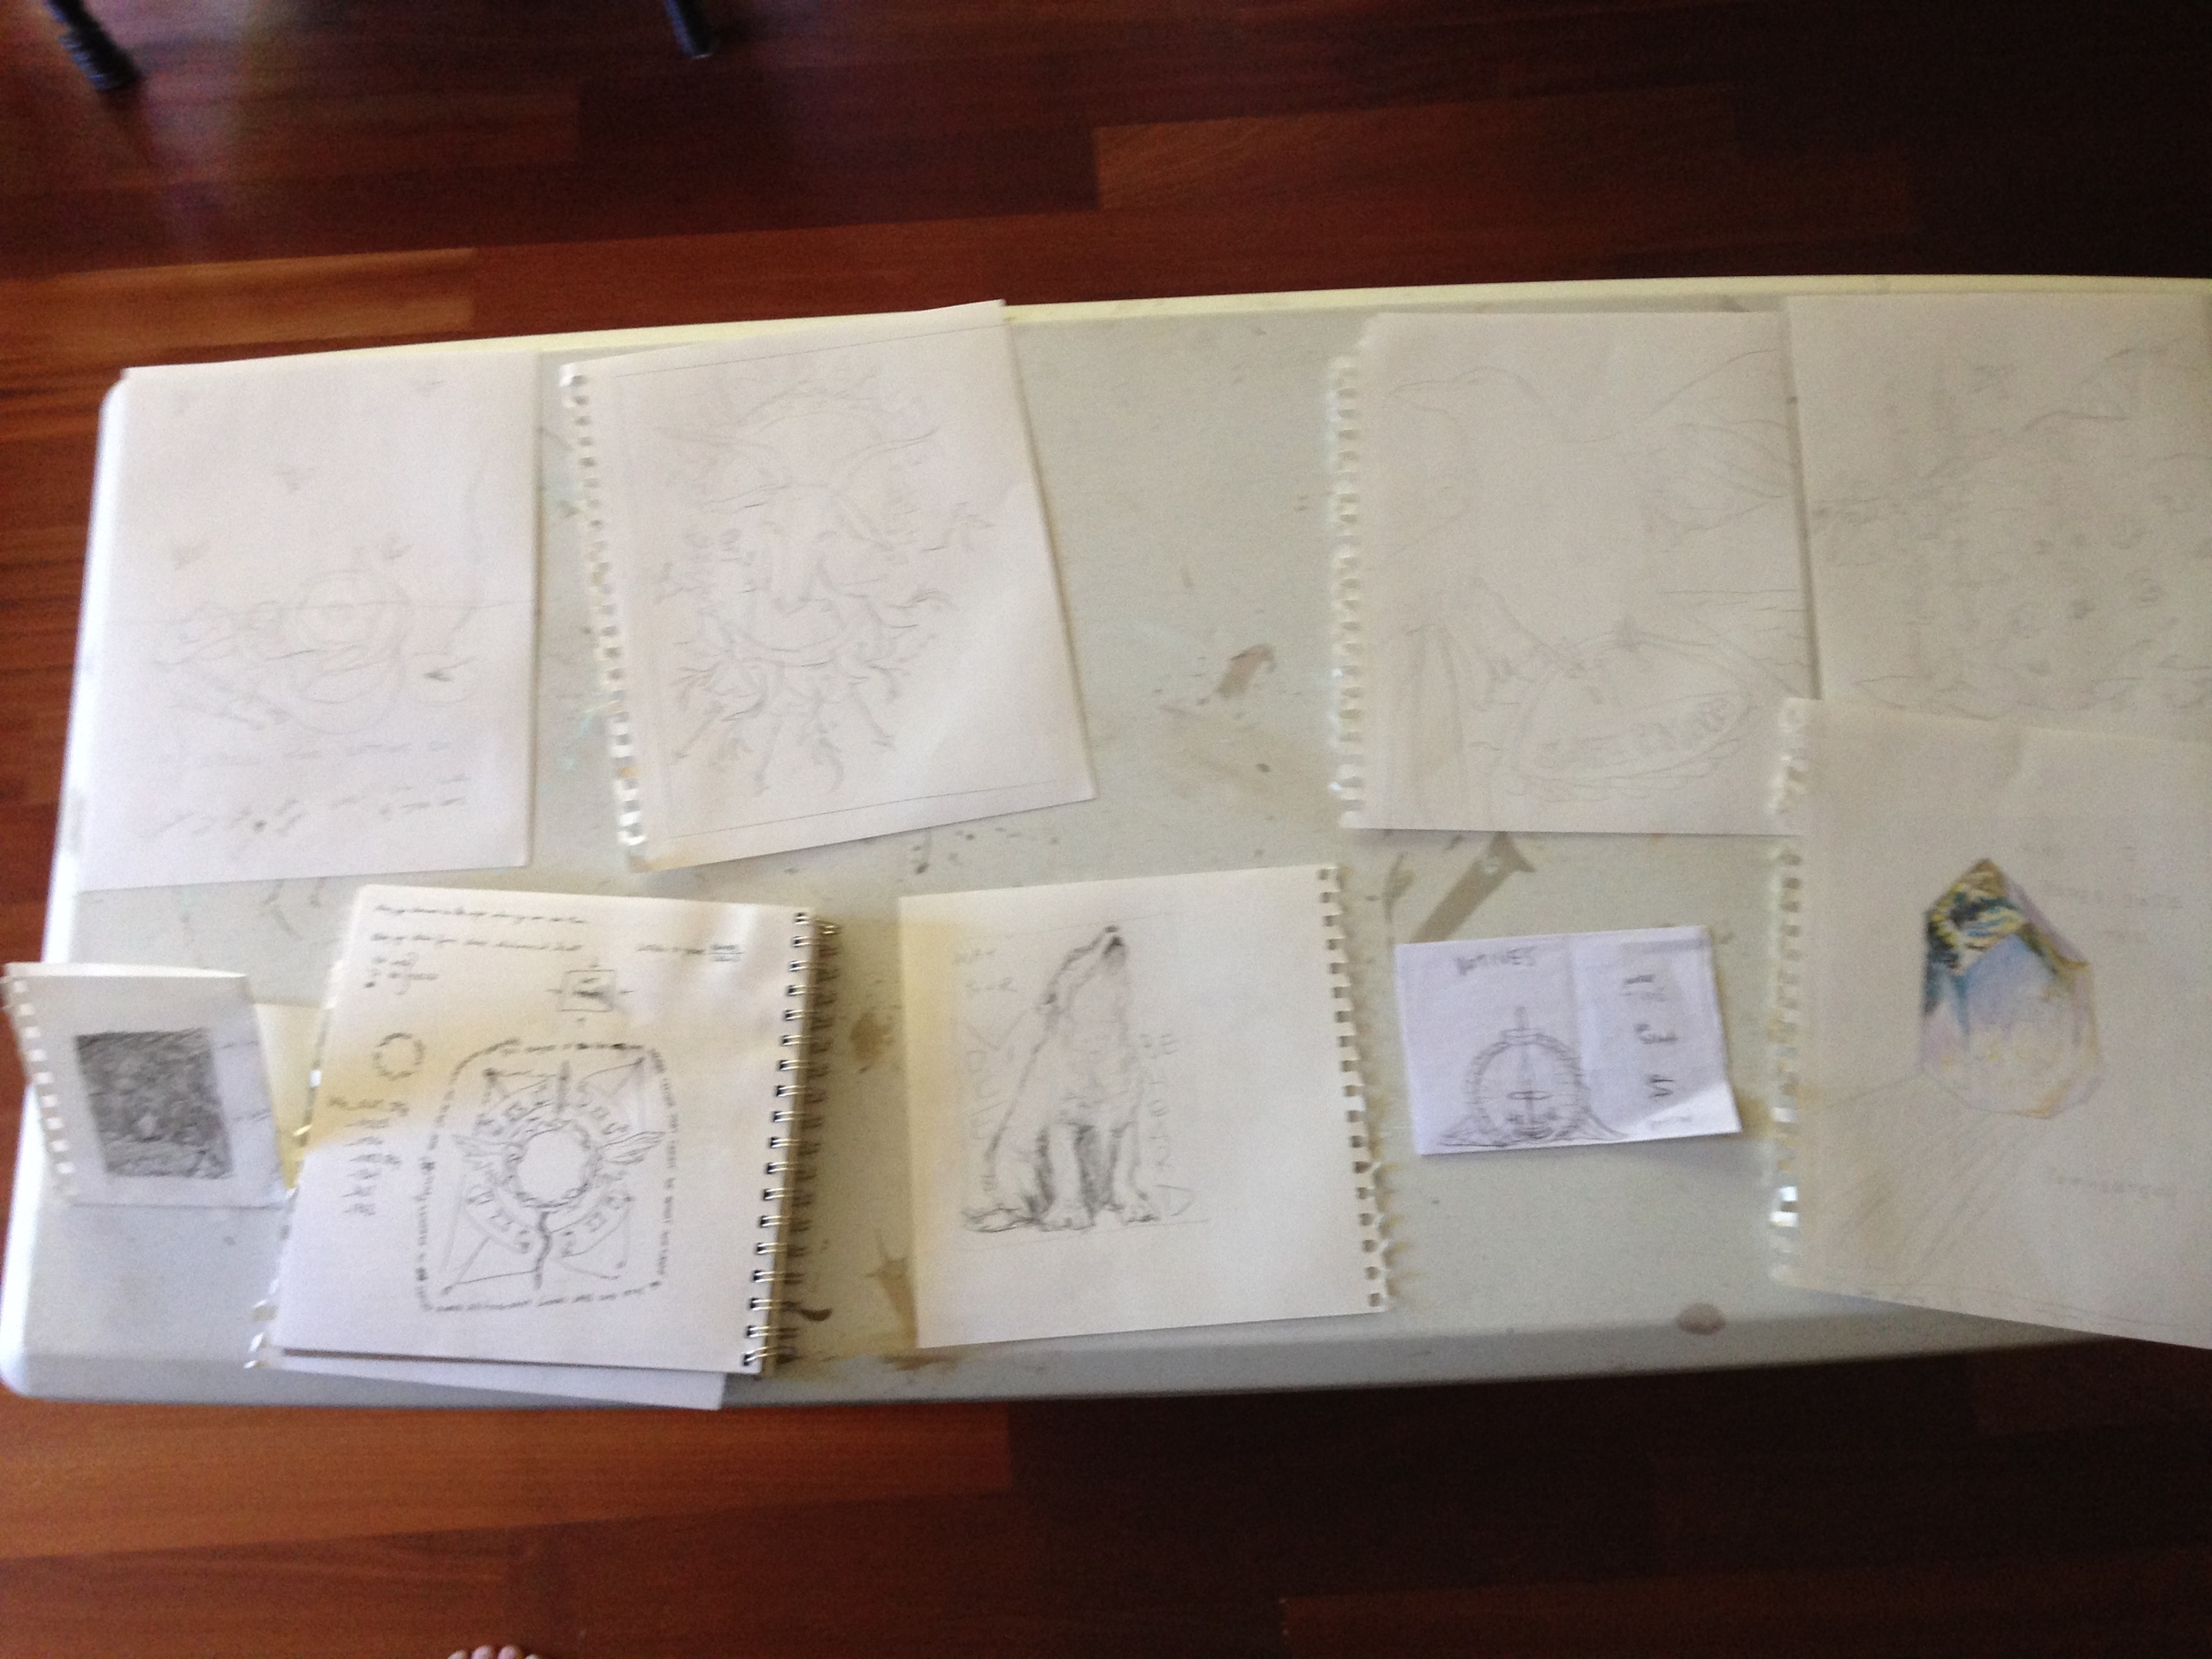 sharing our initial sketches with each other